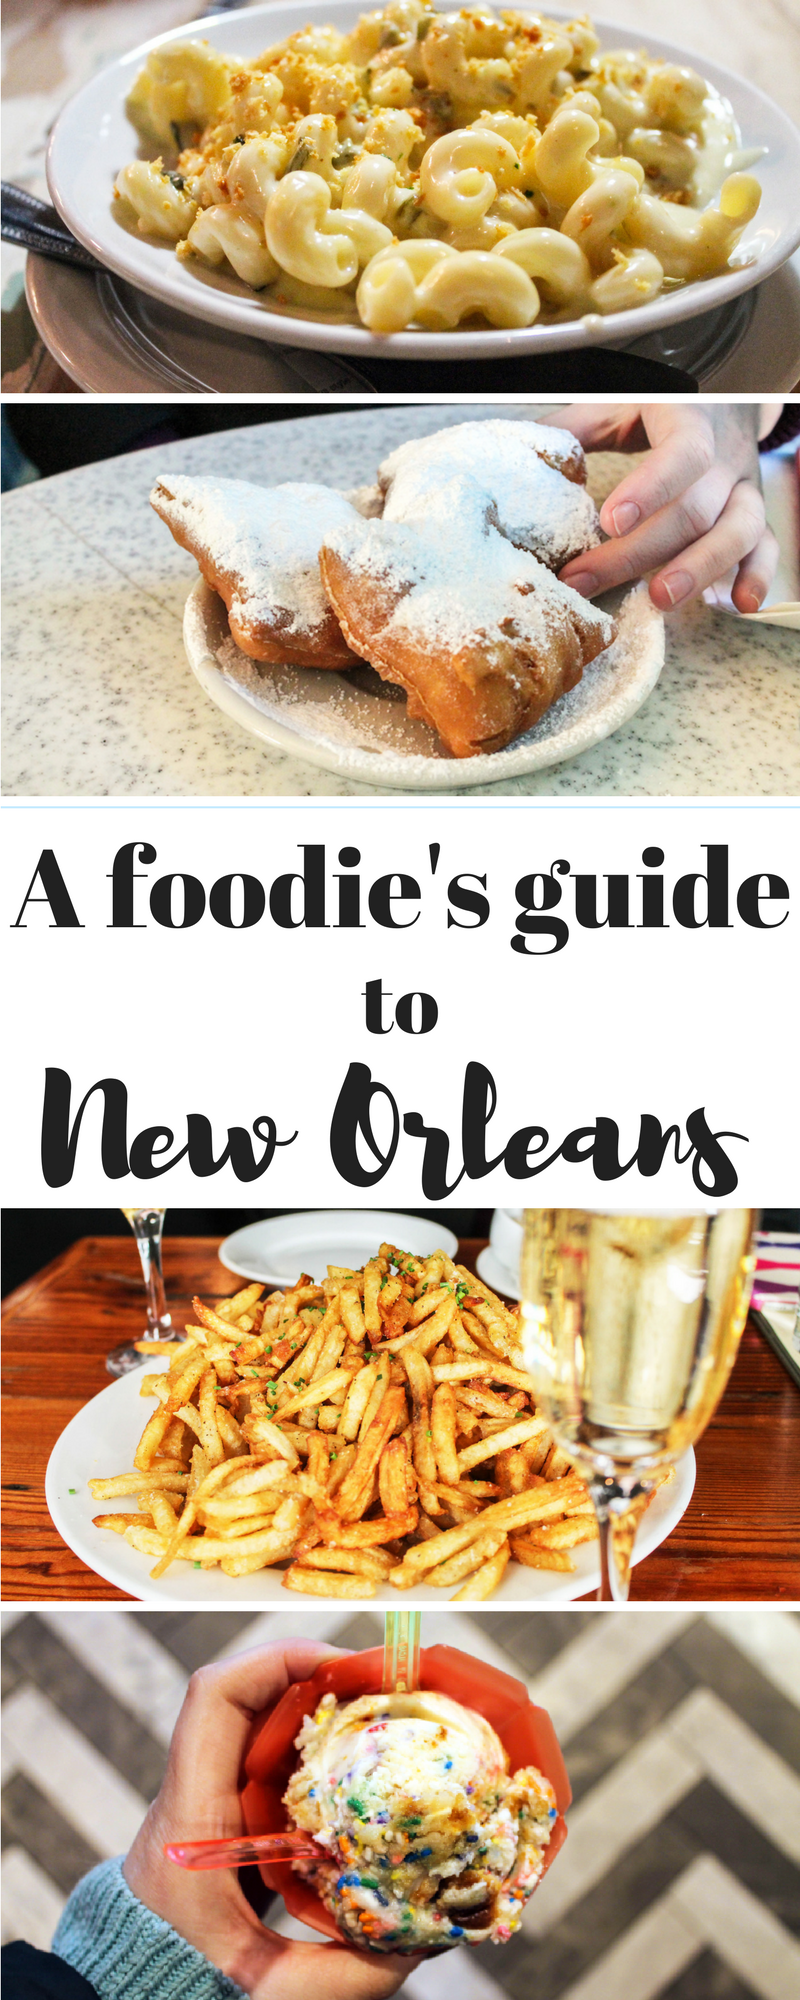 Best Restaurants In New Orleans 2020 A Foodie's Guide to New Orleans | NOLA 2020 | New orleans travel